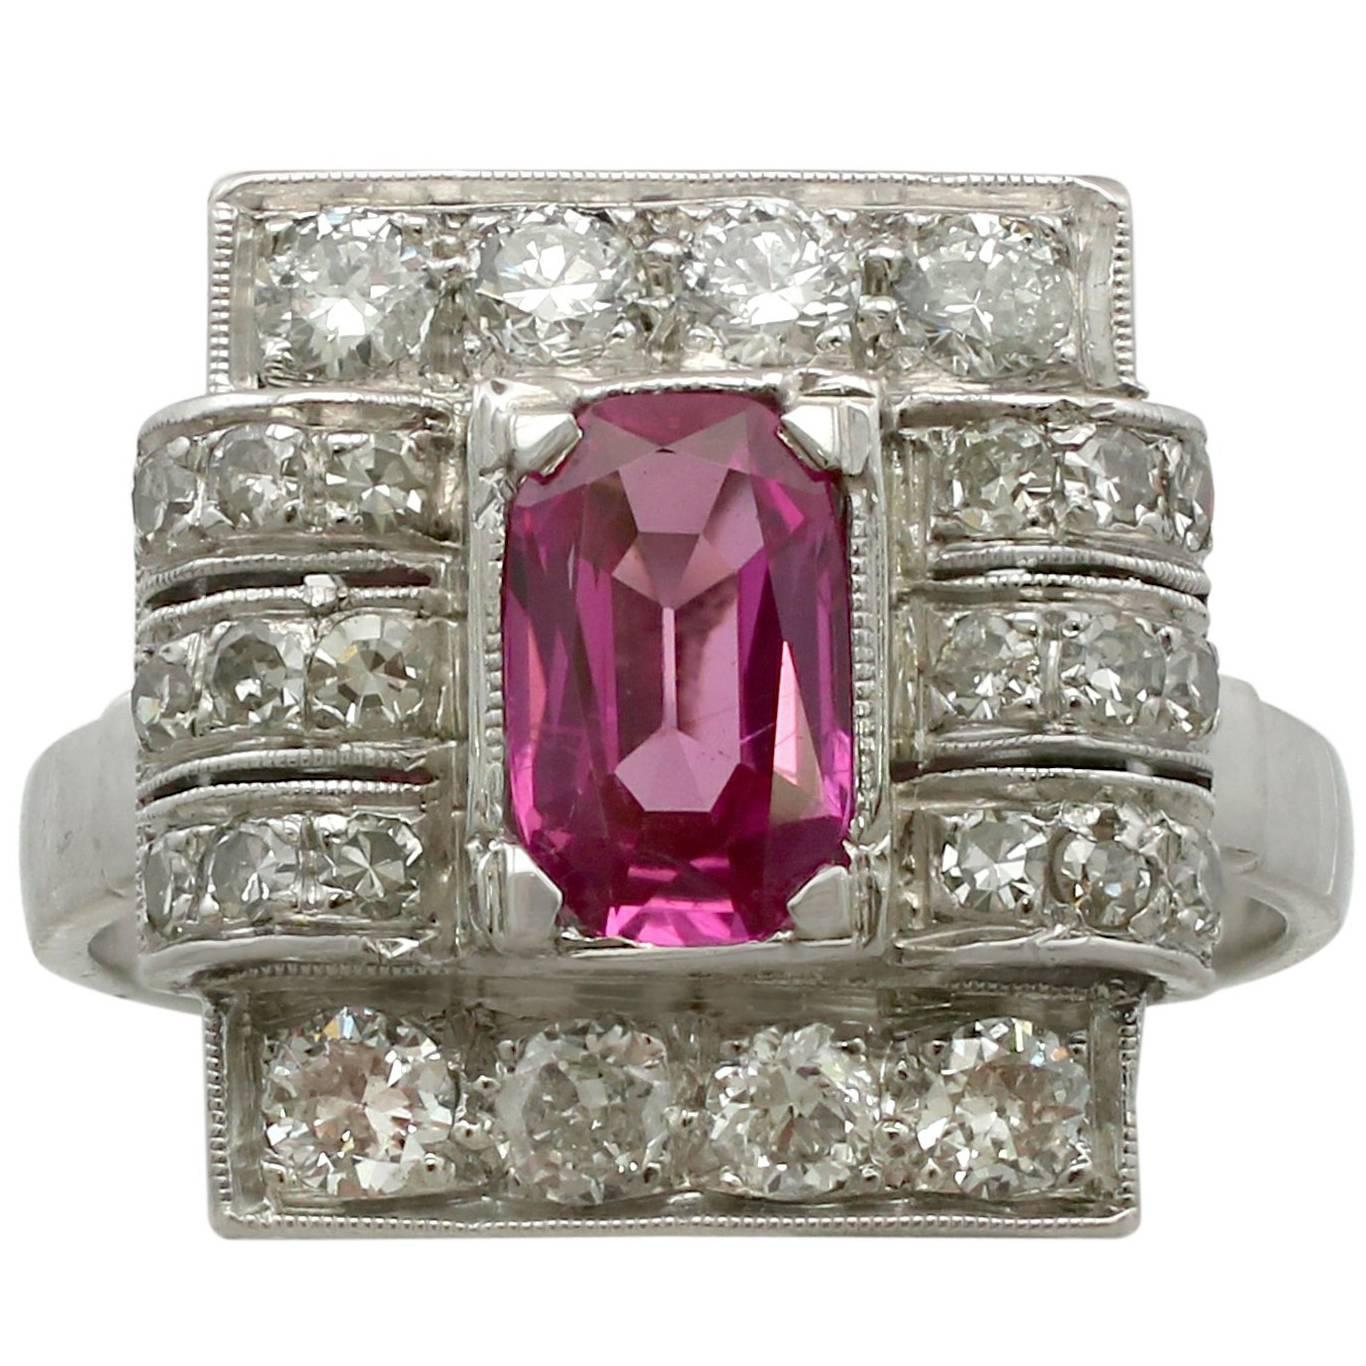 jewelry engagement pink cut silver sapphire lajerrio radiant ring sterling